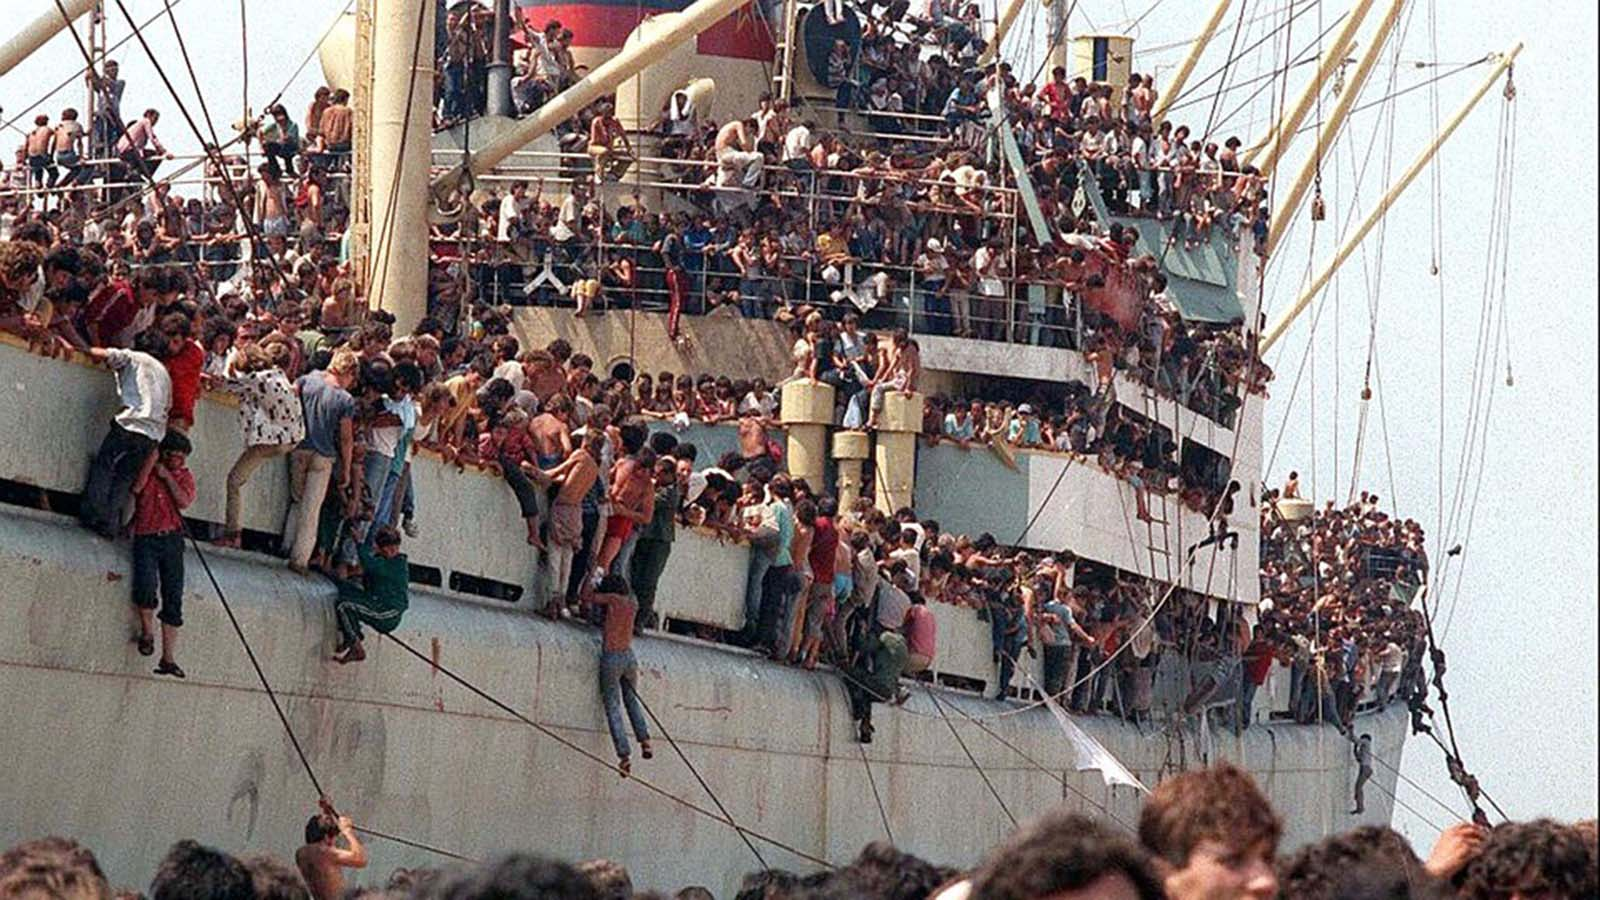 After several hours of waiting in the port of Bari, the Italian authorities allowed the Albanians to disembark for humanitarian reasons.